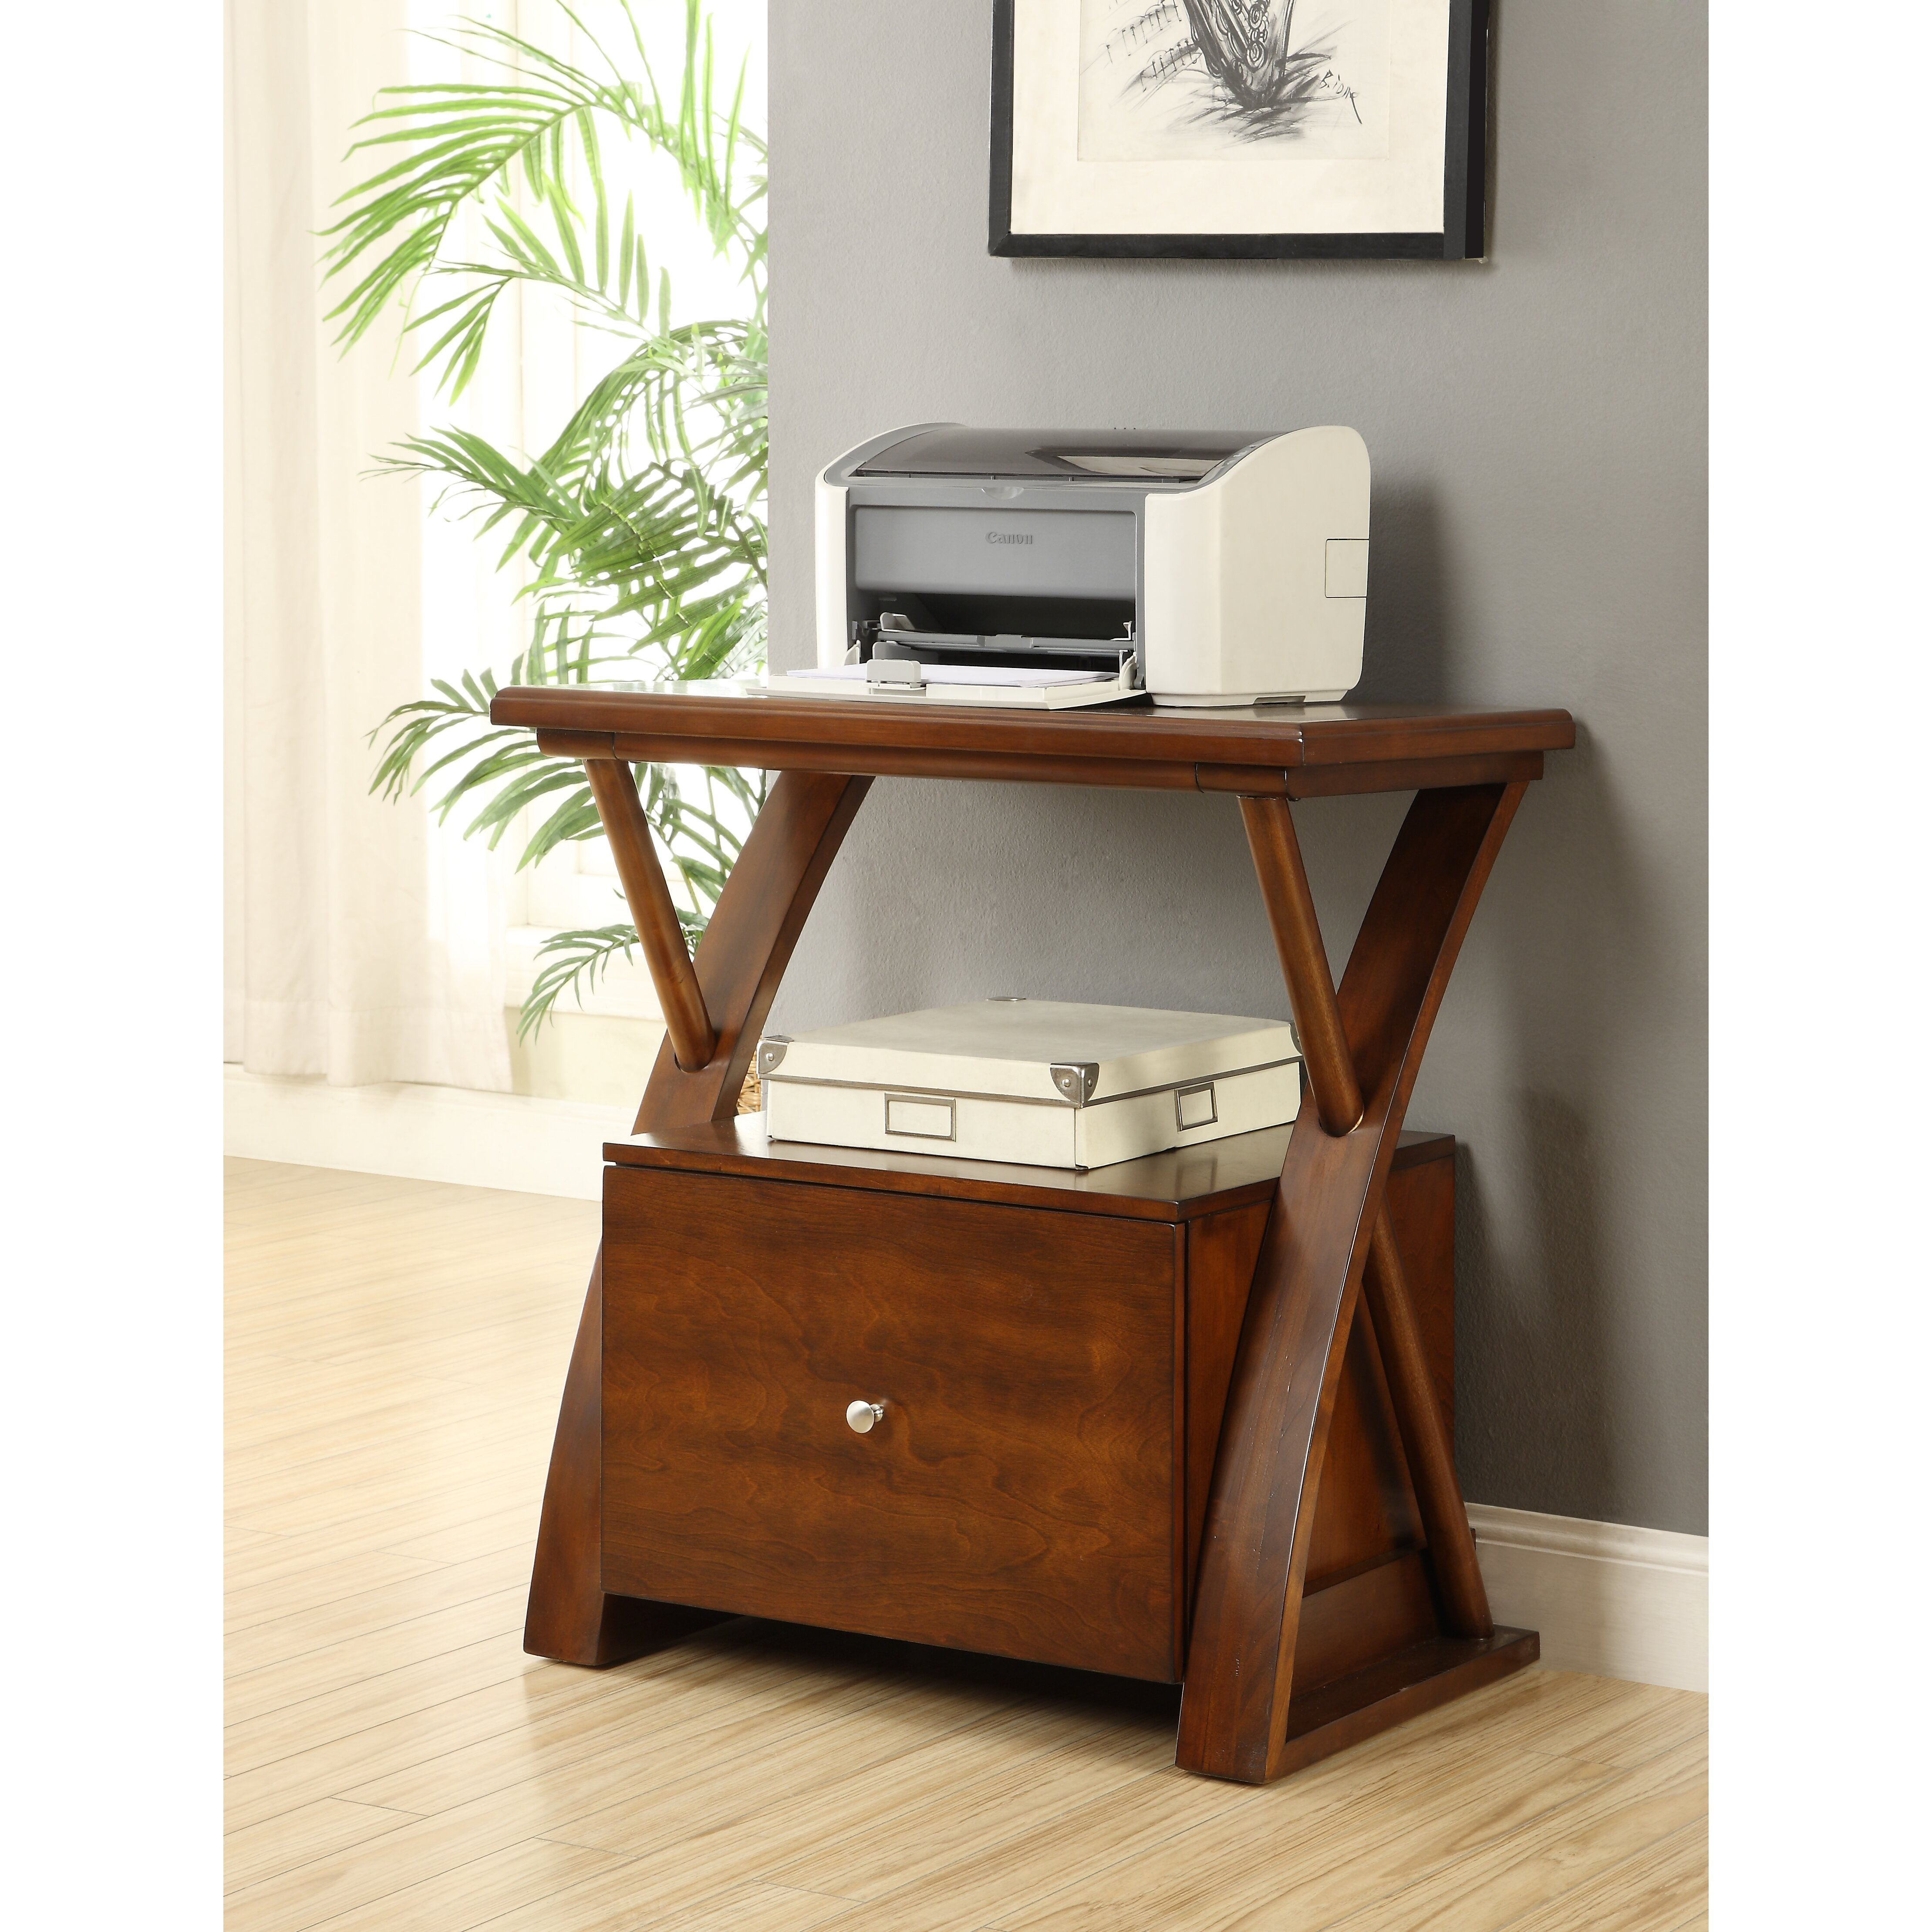 Legends Furniture Super Z Printer Stand Amp Reviews Wayfair